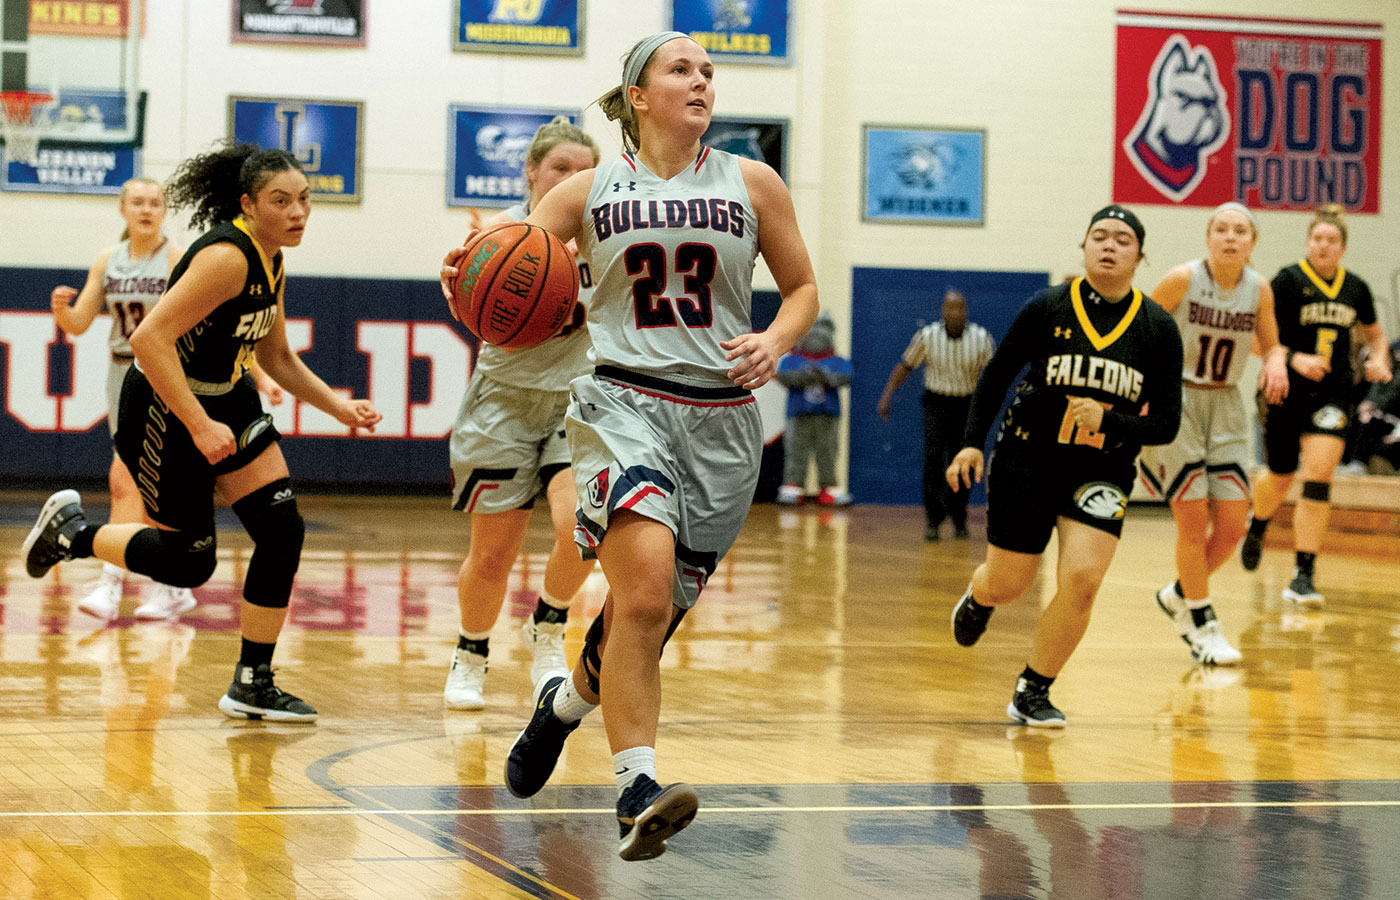 Leandra Sterner scored 21 points against the Falcons